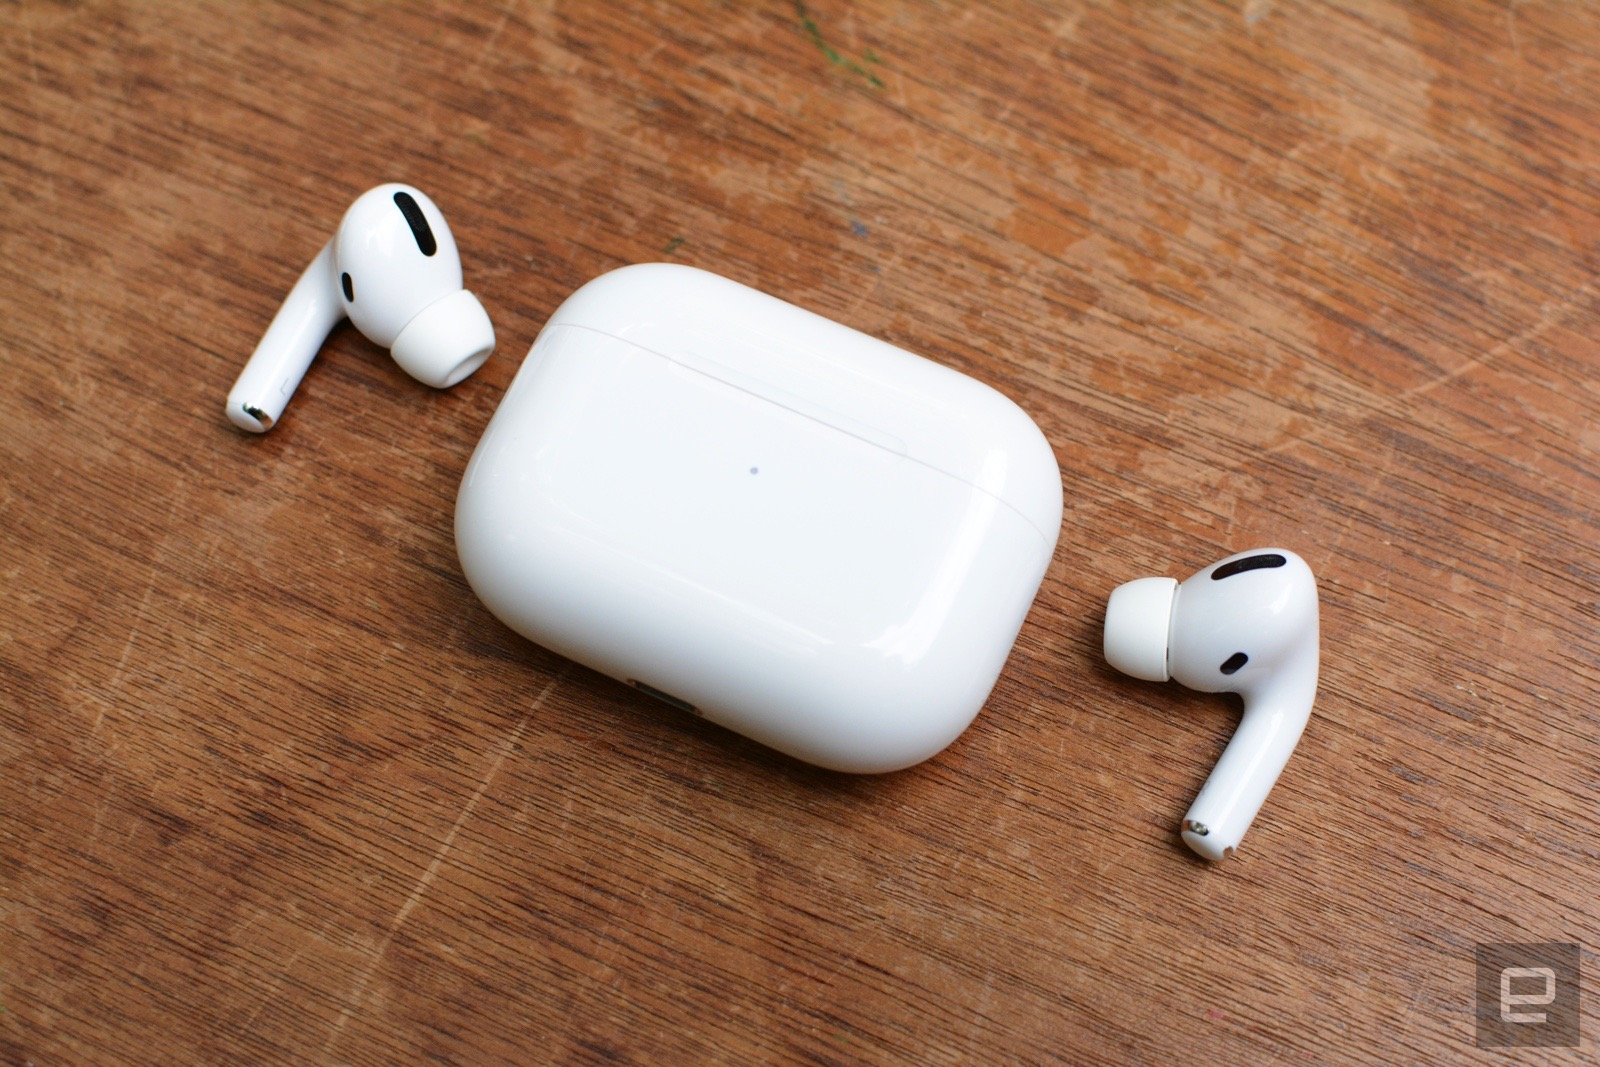 B&H is offering a rare AirPods Pro deal with AppleCare included